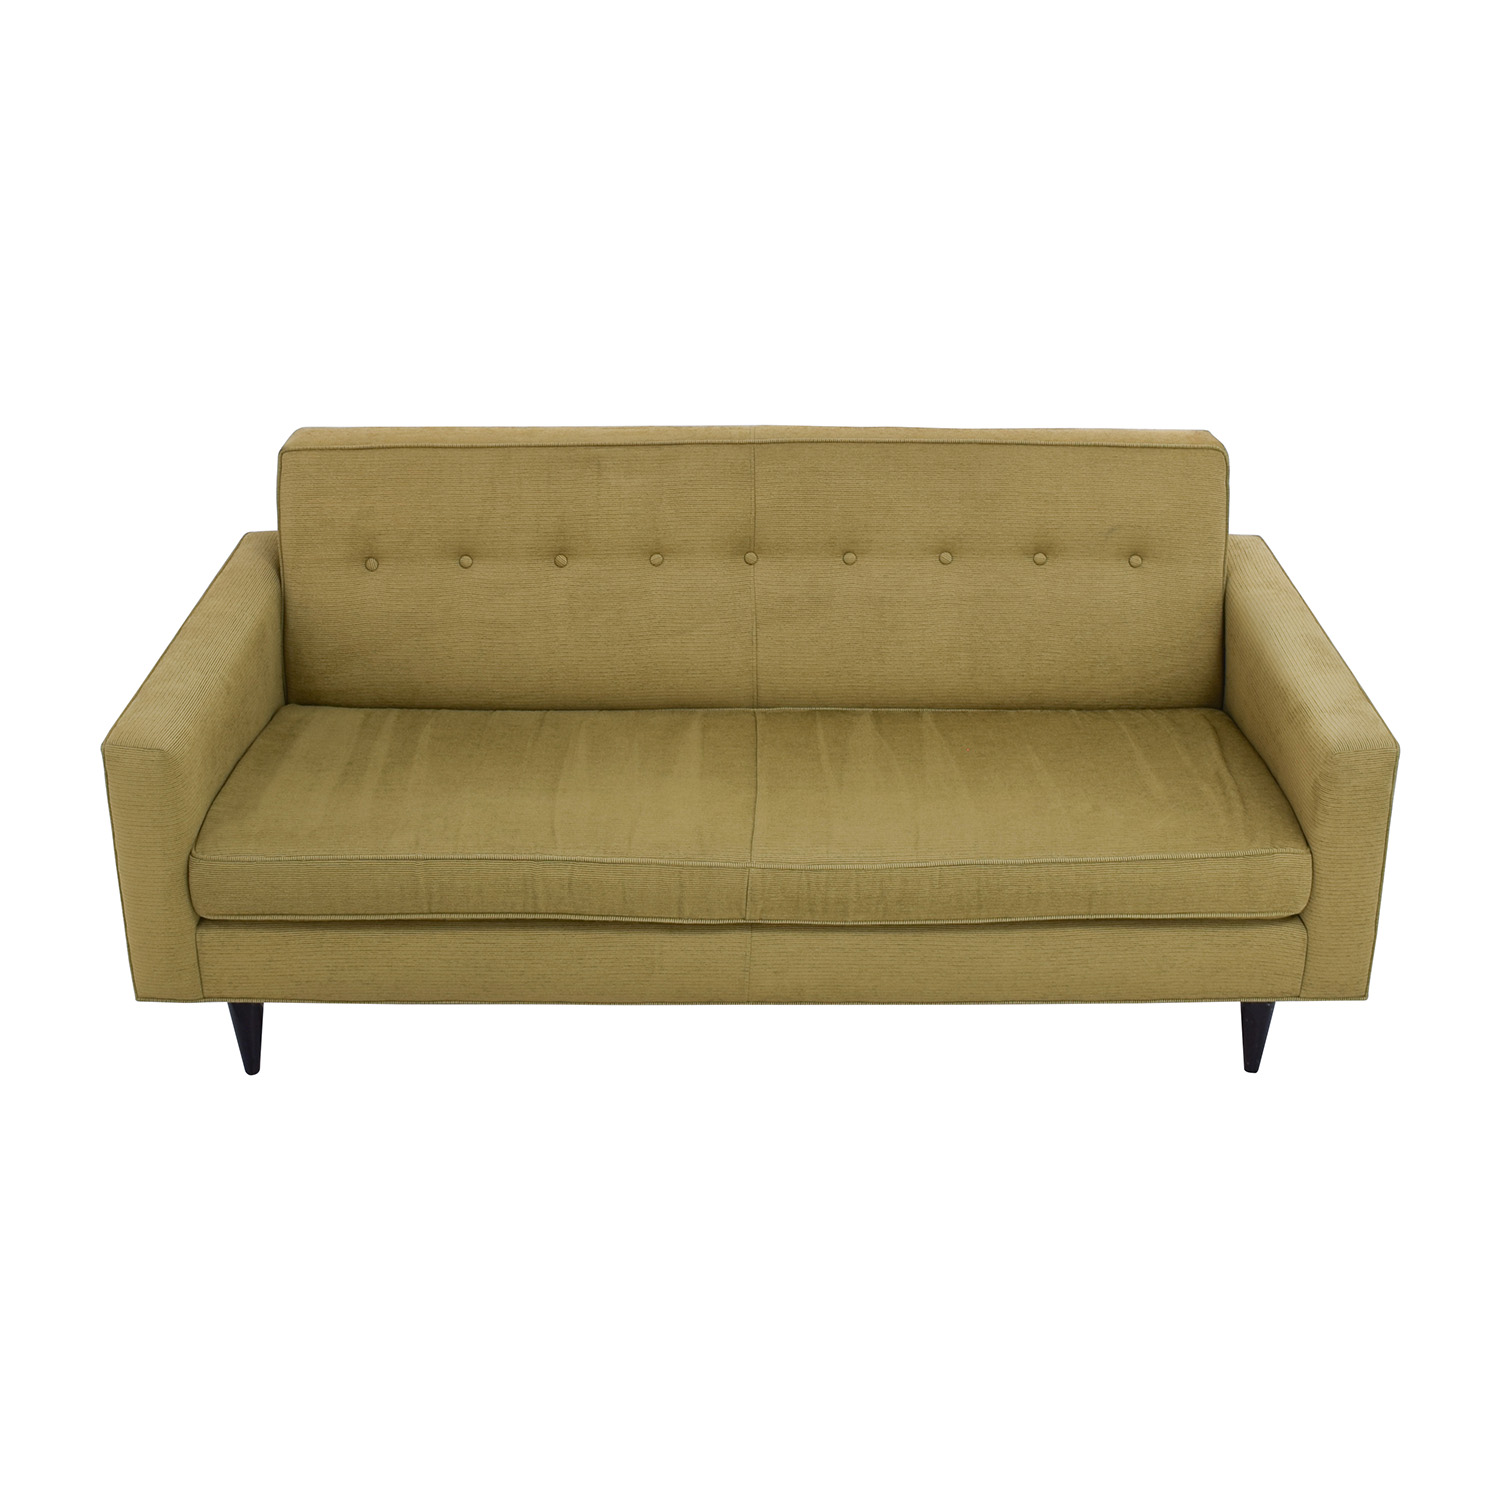 59 Off Design Within Reach Bantam Tufted Green Sofa Sofas